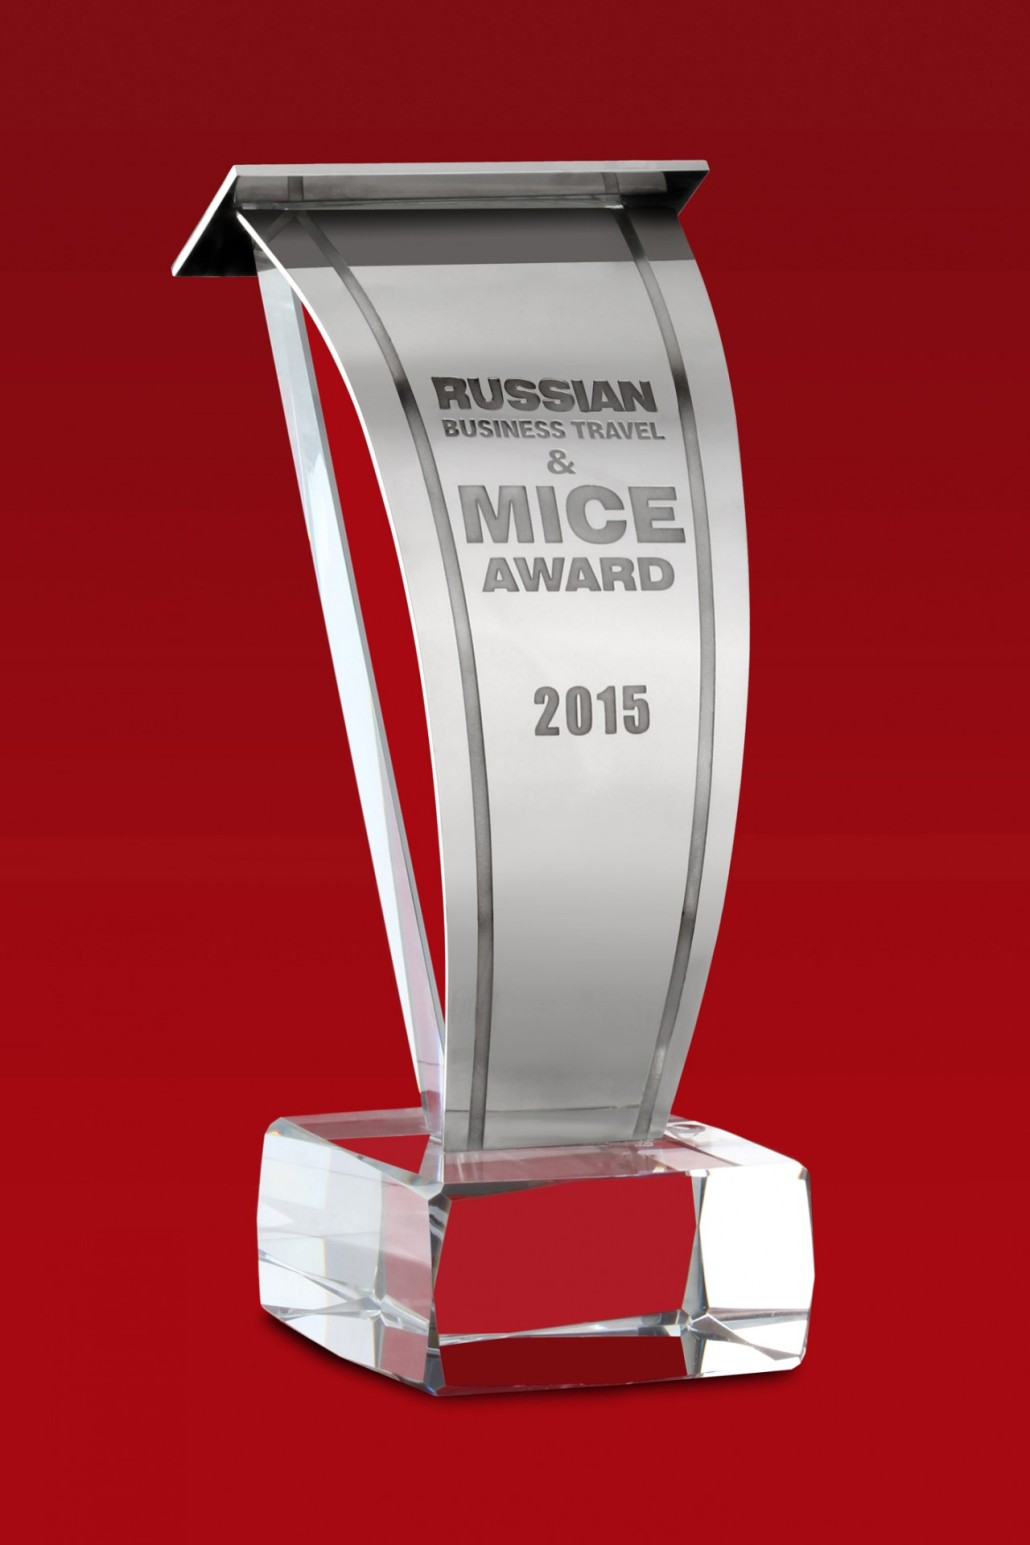 Photo Credit: http://www.mice-award.ru/